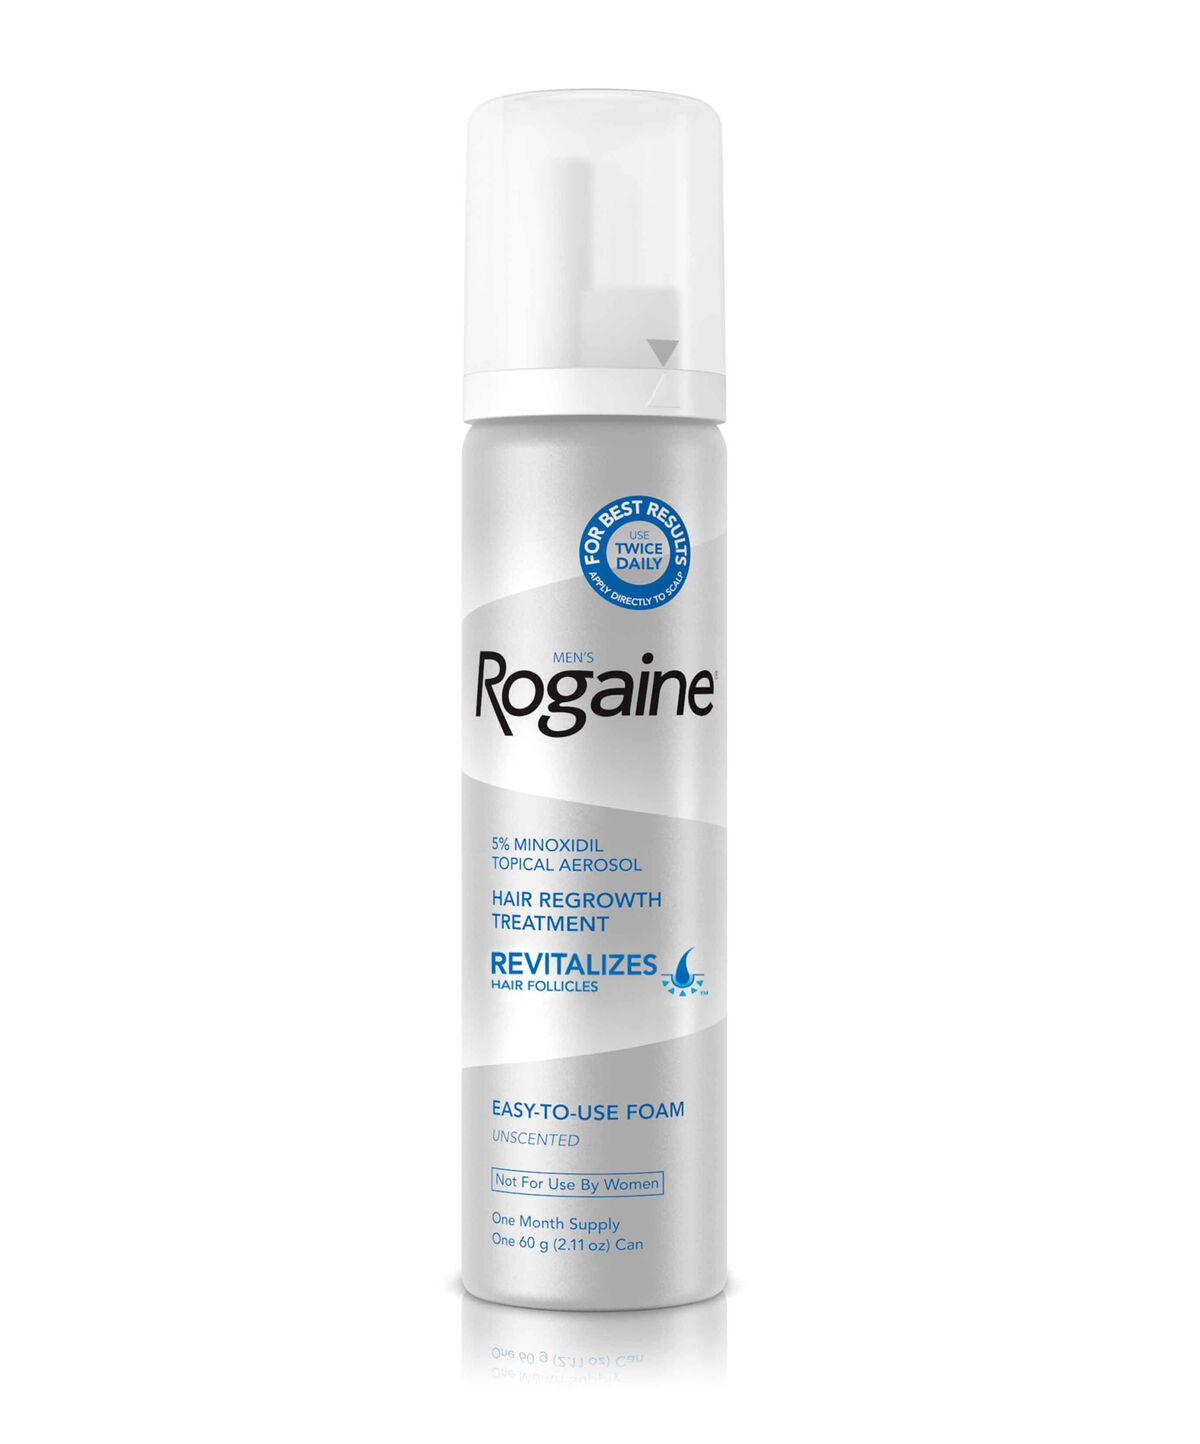 Men's ROGAINE® 5% Minoxidil Unscented Foam Subscribe & Save Up To 20% (View  discounted prices in the cart)